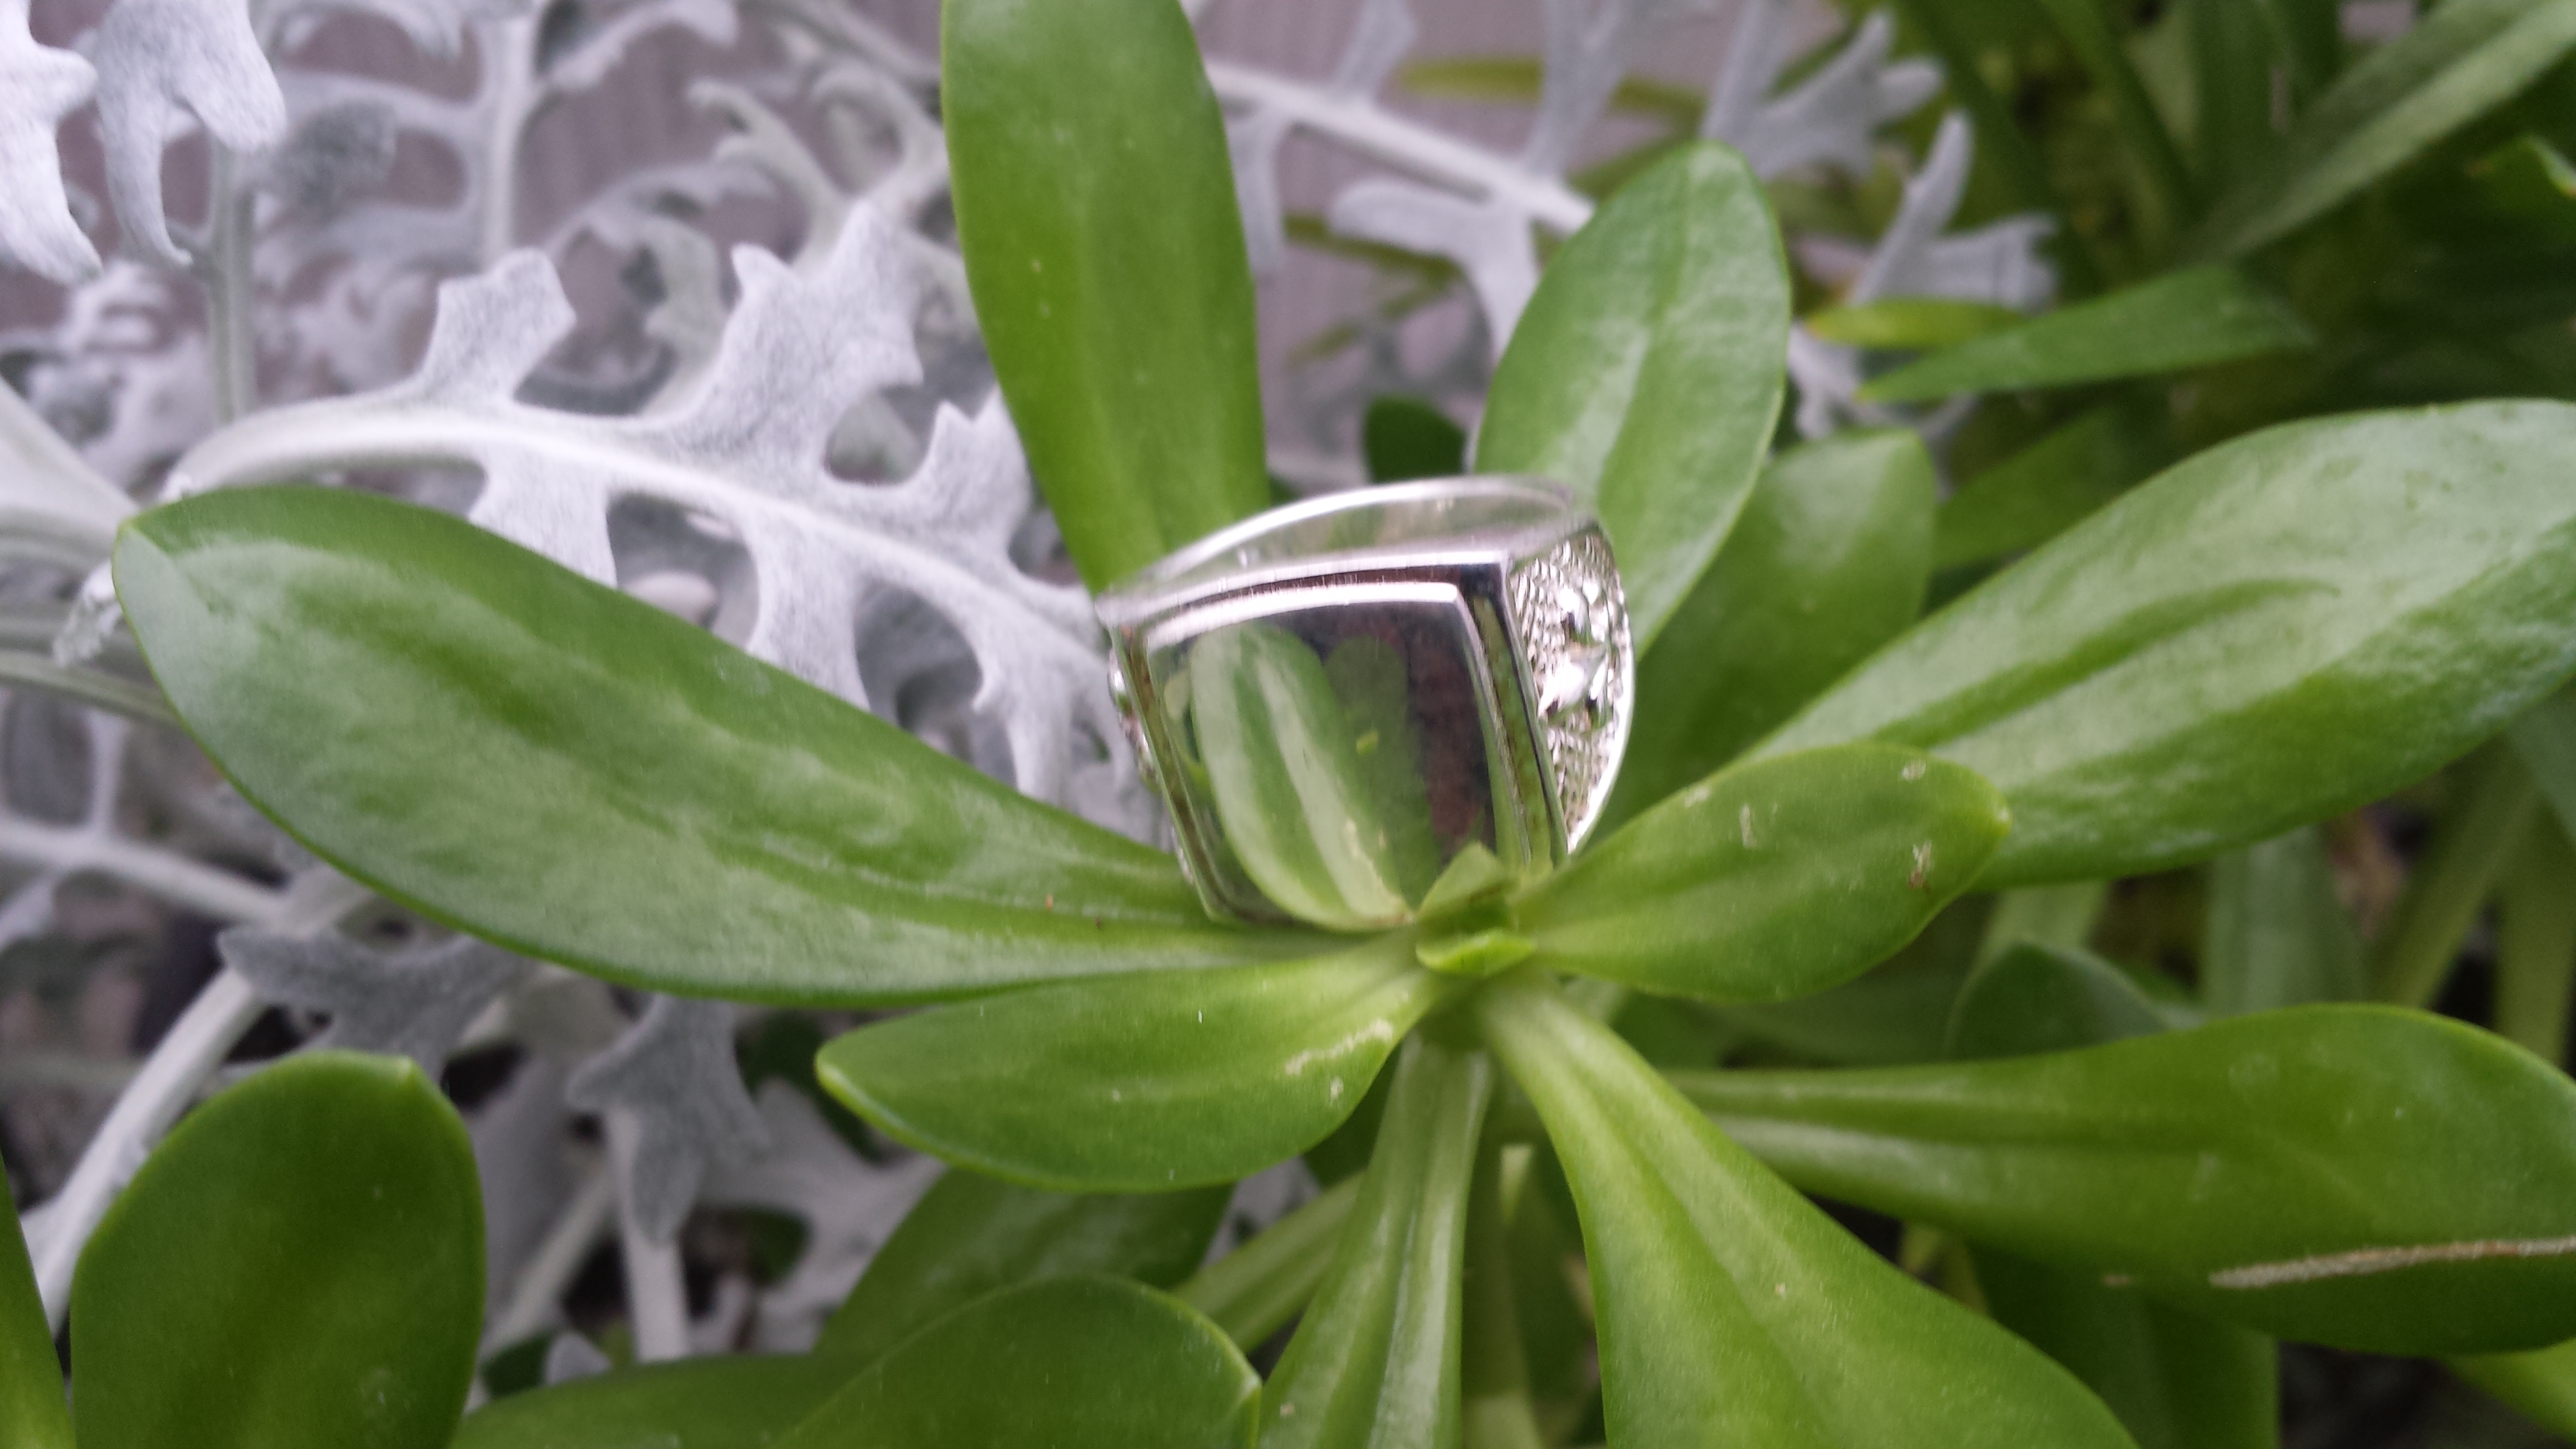 CLASSIC HANDMADE HEAVY 925 STERLING SILVER RING 13 G.